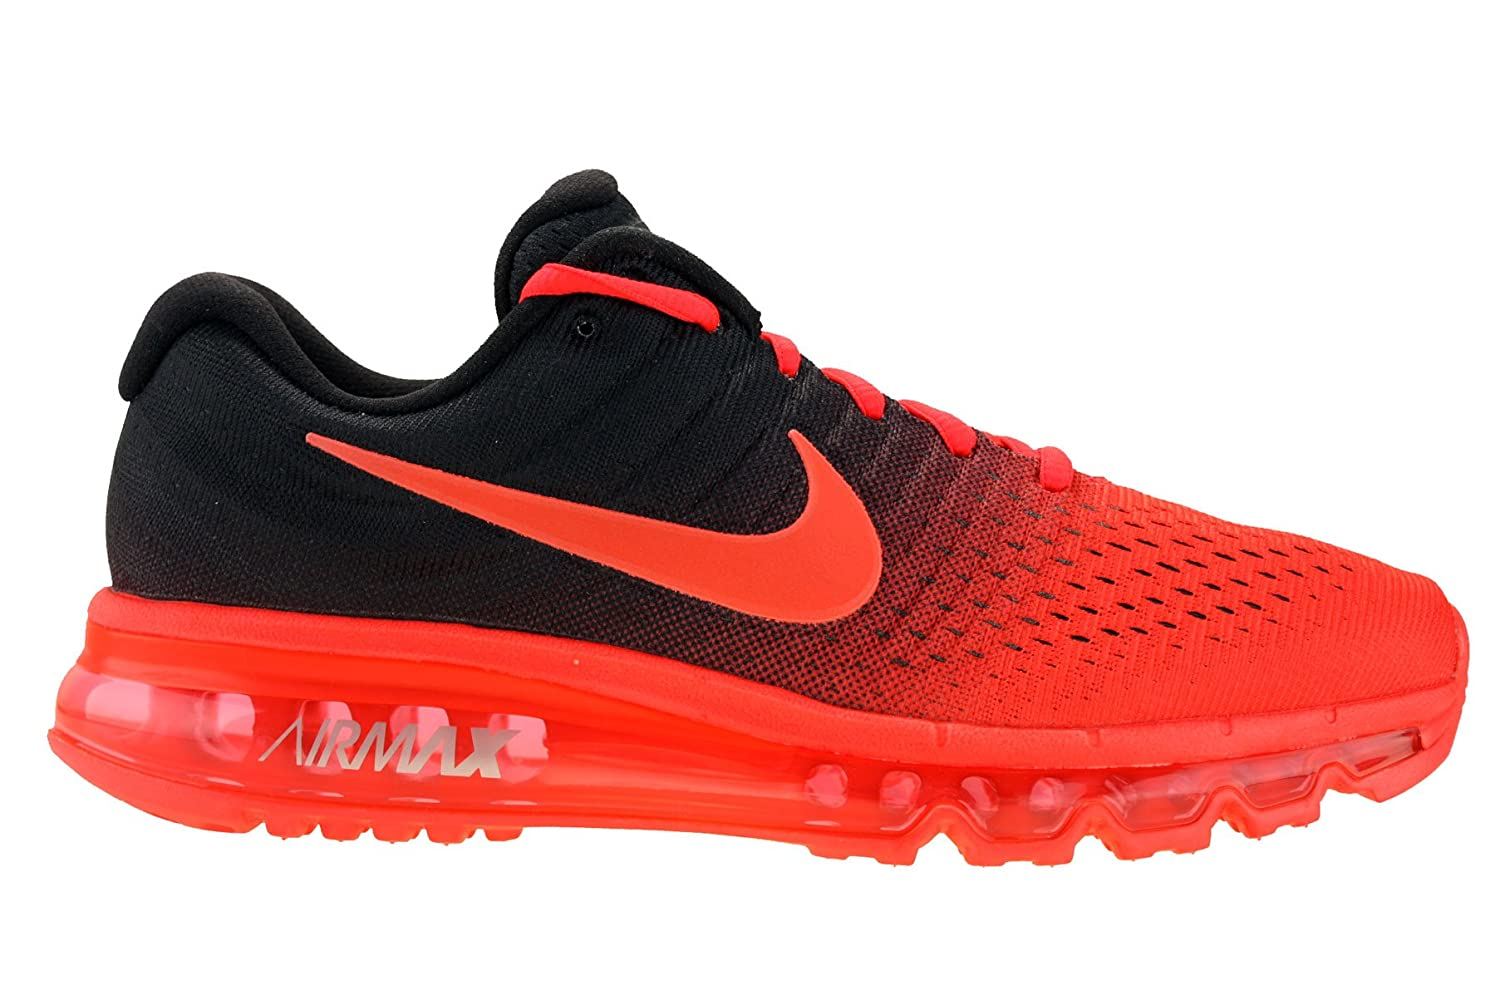 site réputé 8e5ad 9415a Nike Mens Air Max 2017 Running Shoes Bright Crimson/Total Crimson/Black  849559-600 Size 12.5